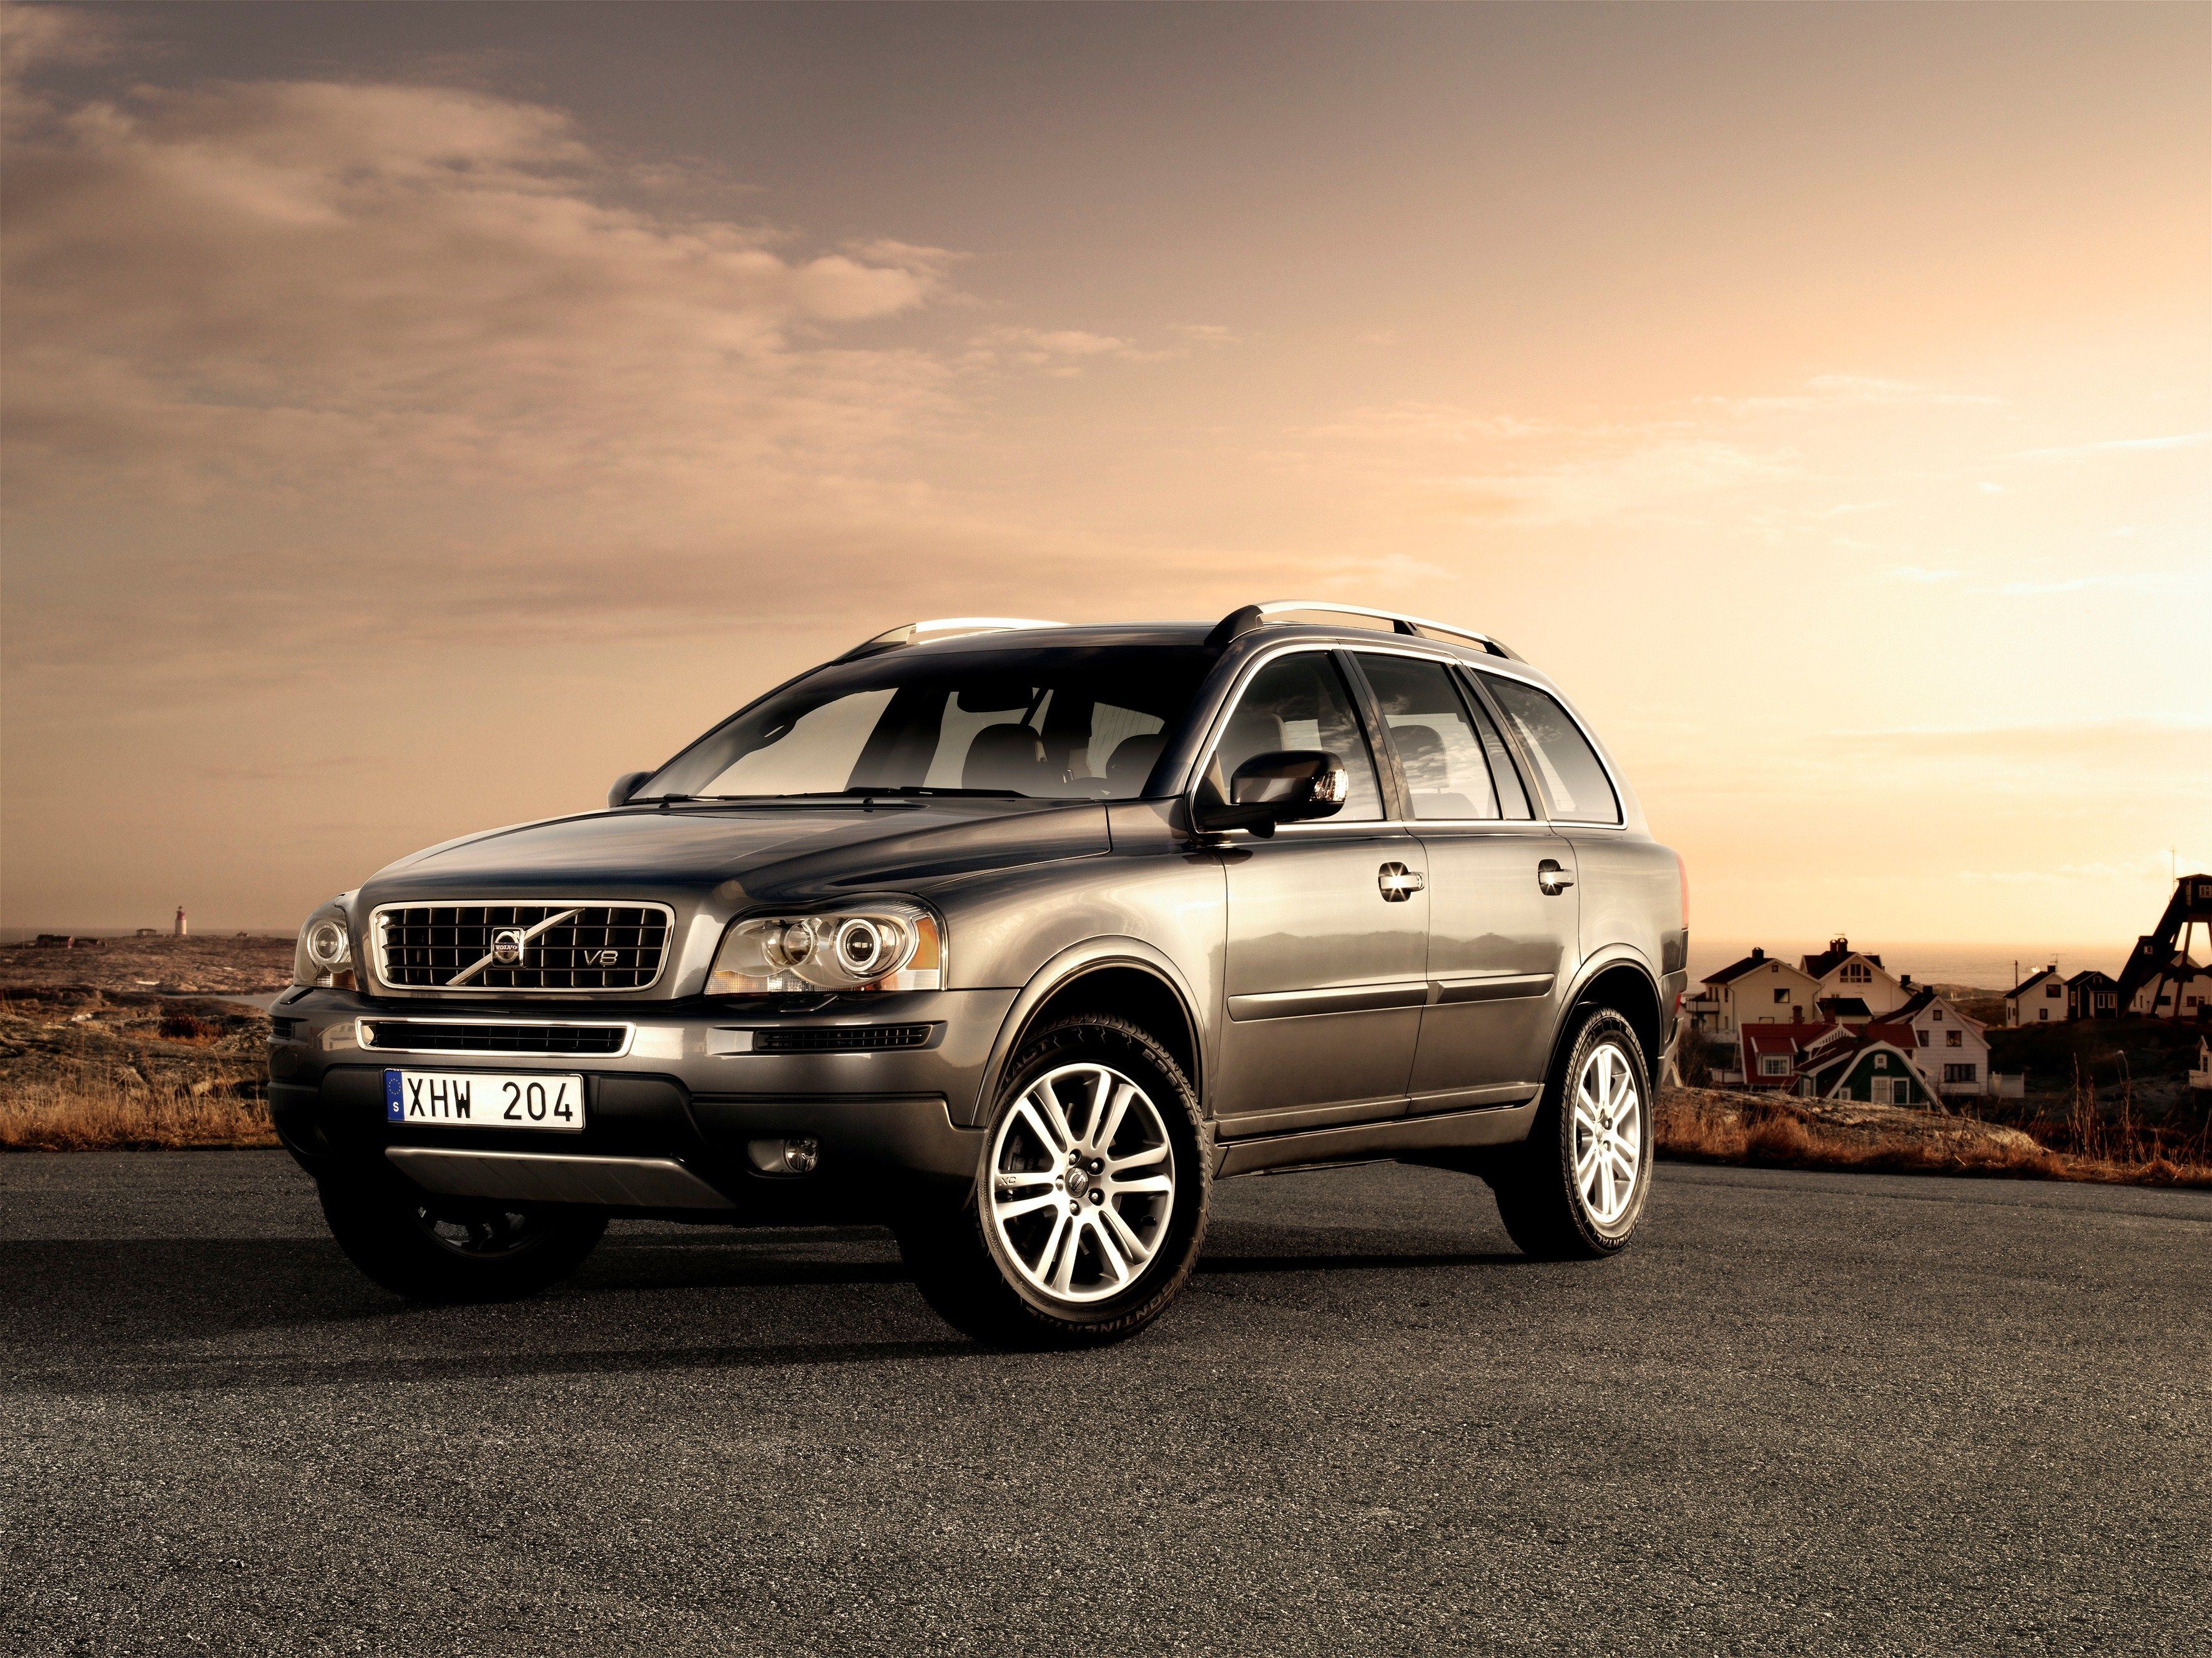 volvo xc90 v8 executive yamaha v8 engine same engine with help of